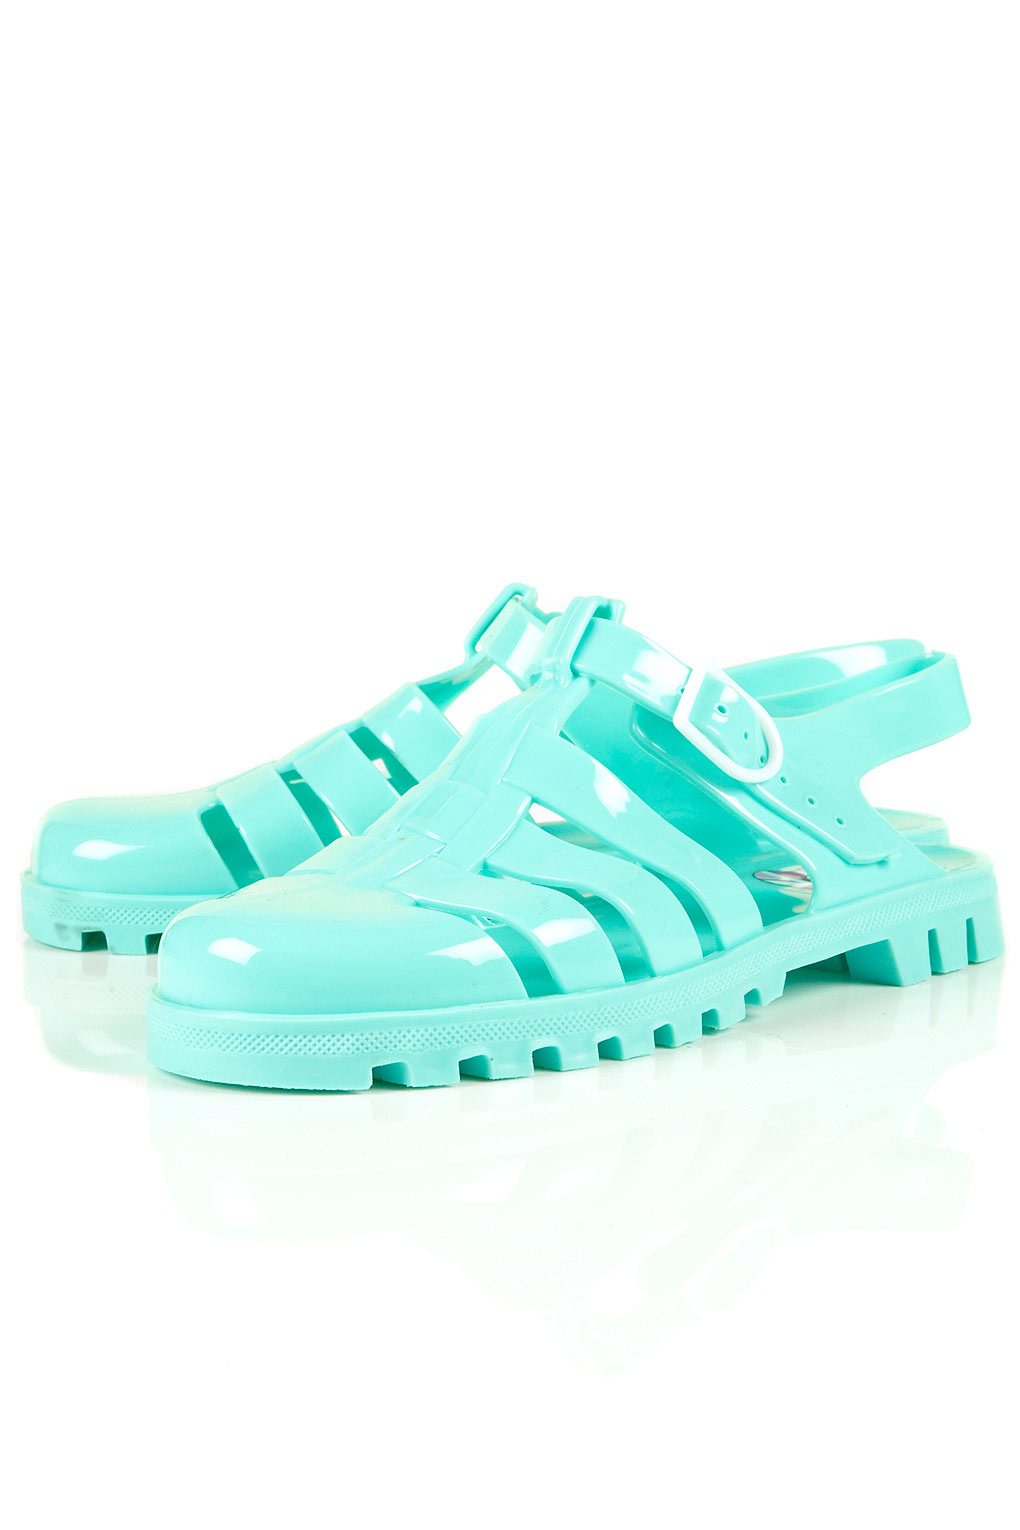 Jelly Shoes Comeback?